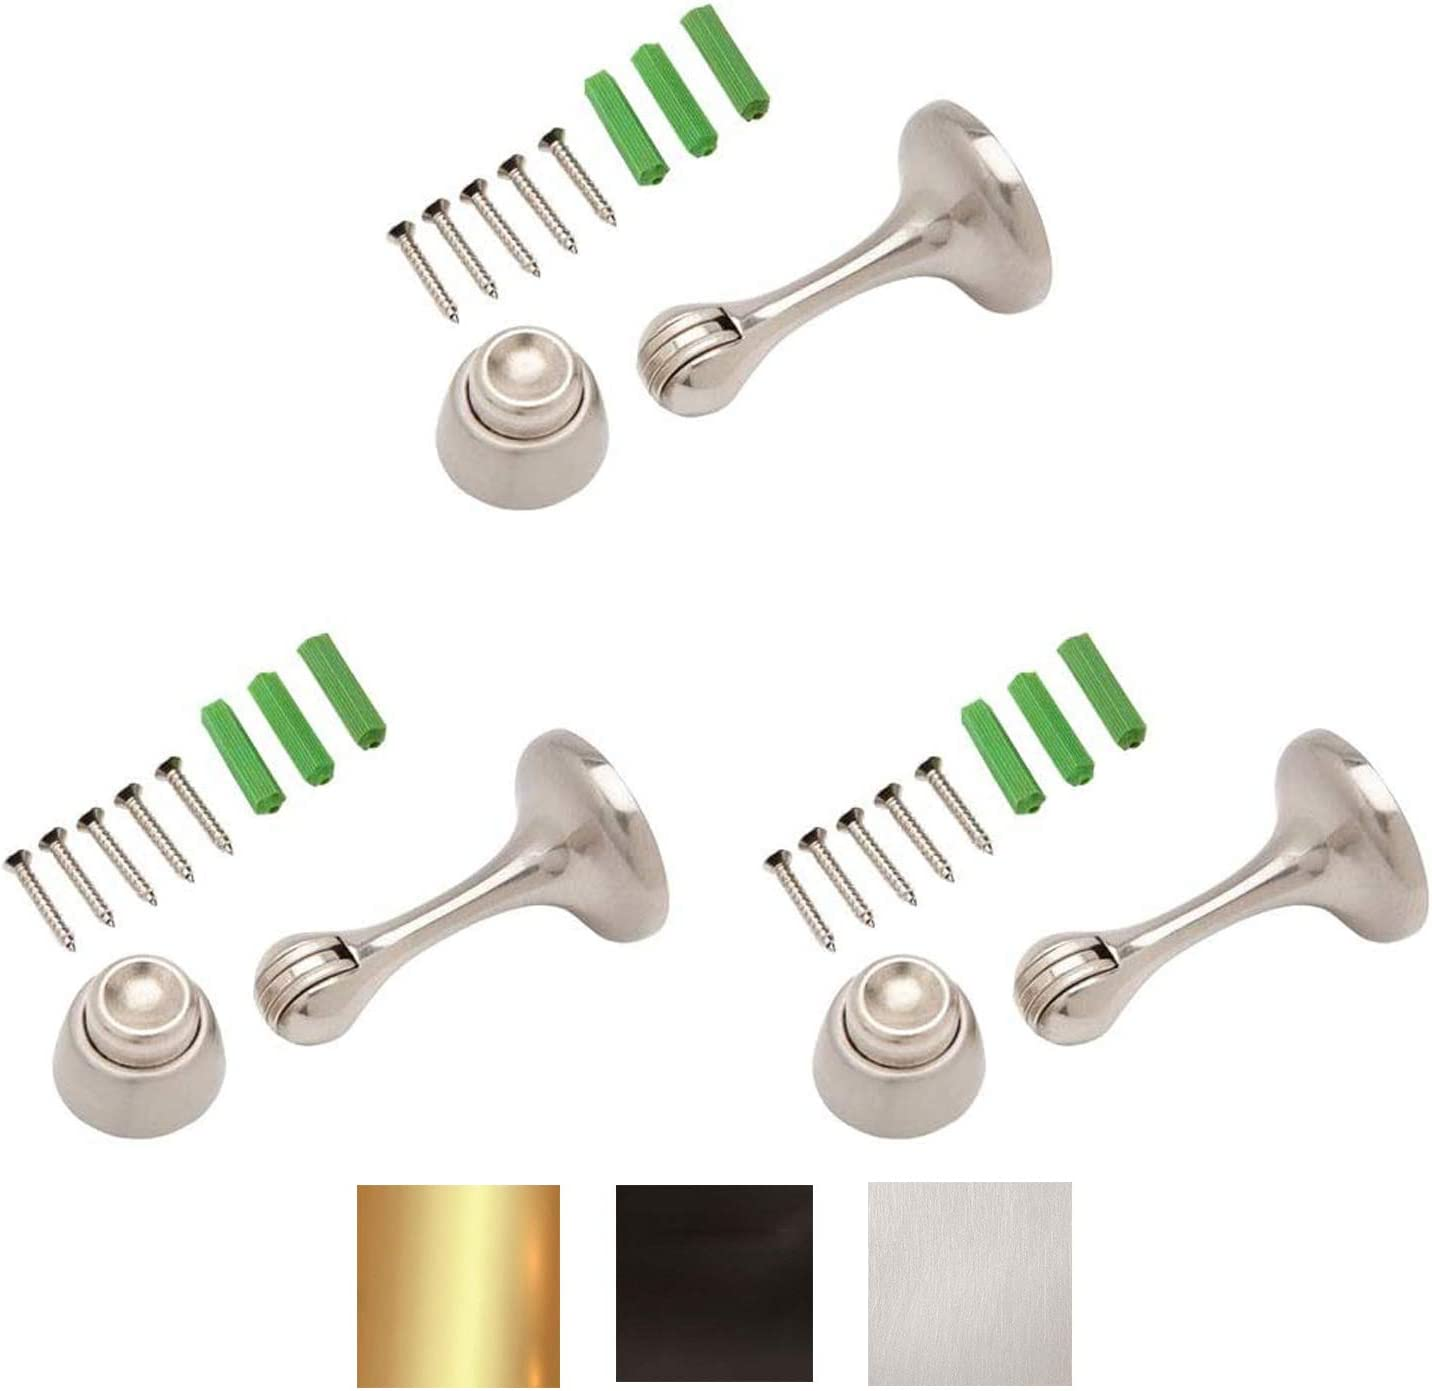 Magnetic Door Quality inspection Stop 3in. Discount is also underway Catch Holds and Protects Premium-Grade